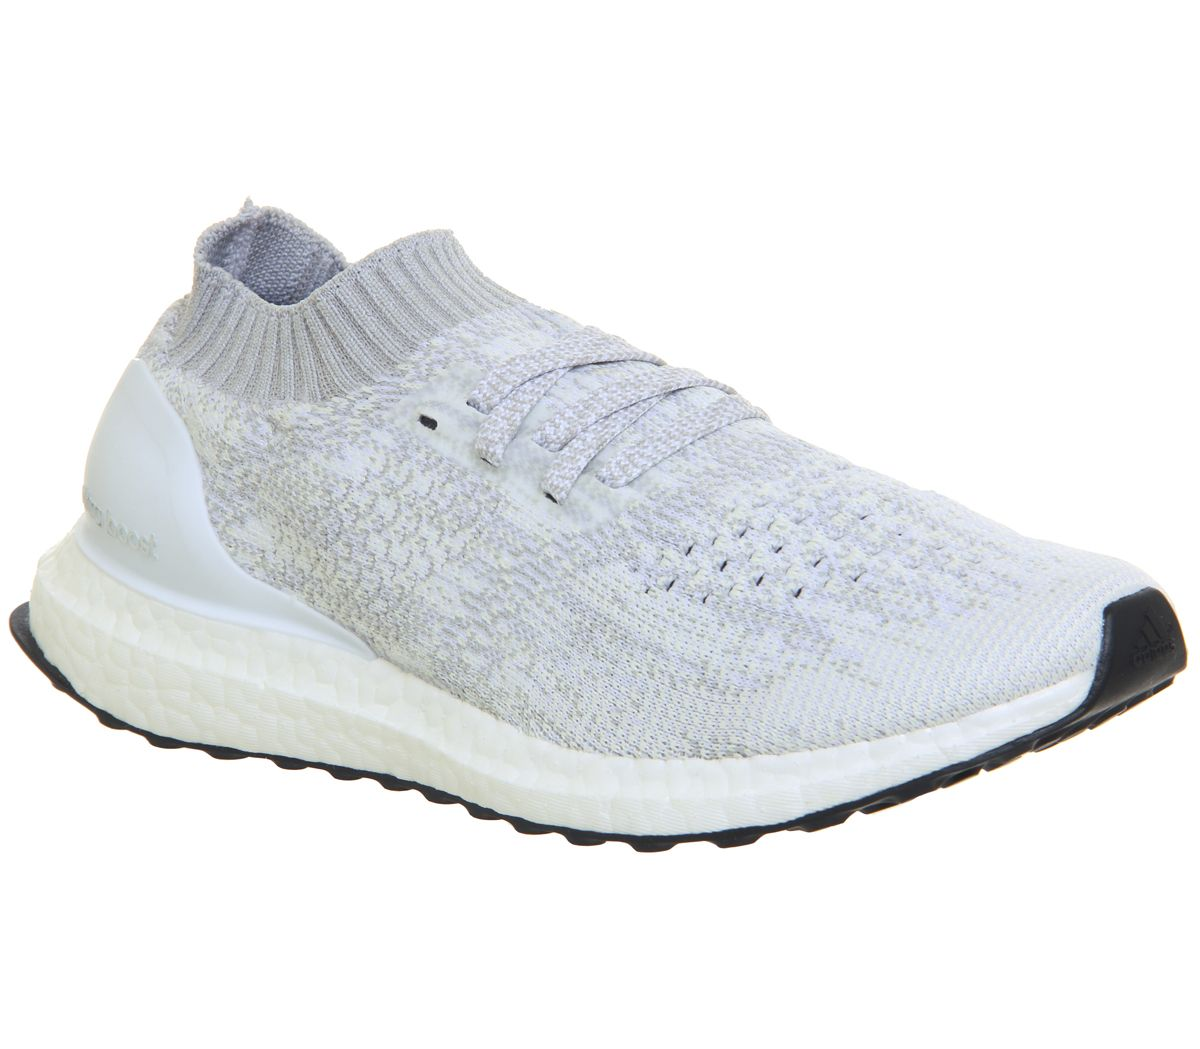 67da2870d344b adidas Ultraboost Ultra Boost Uncaged Trainers White - Hers trainers